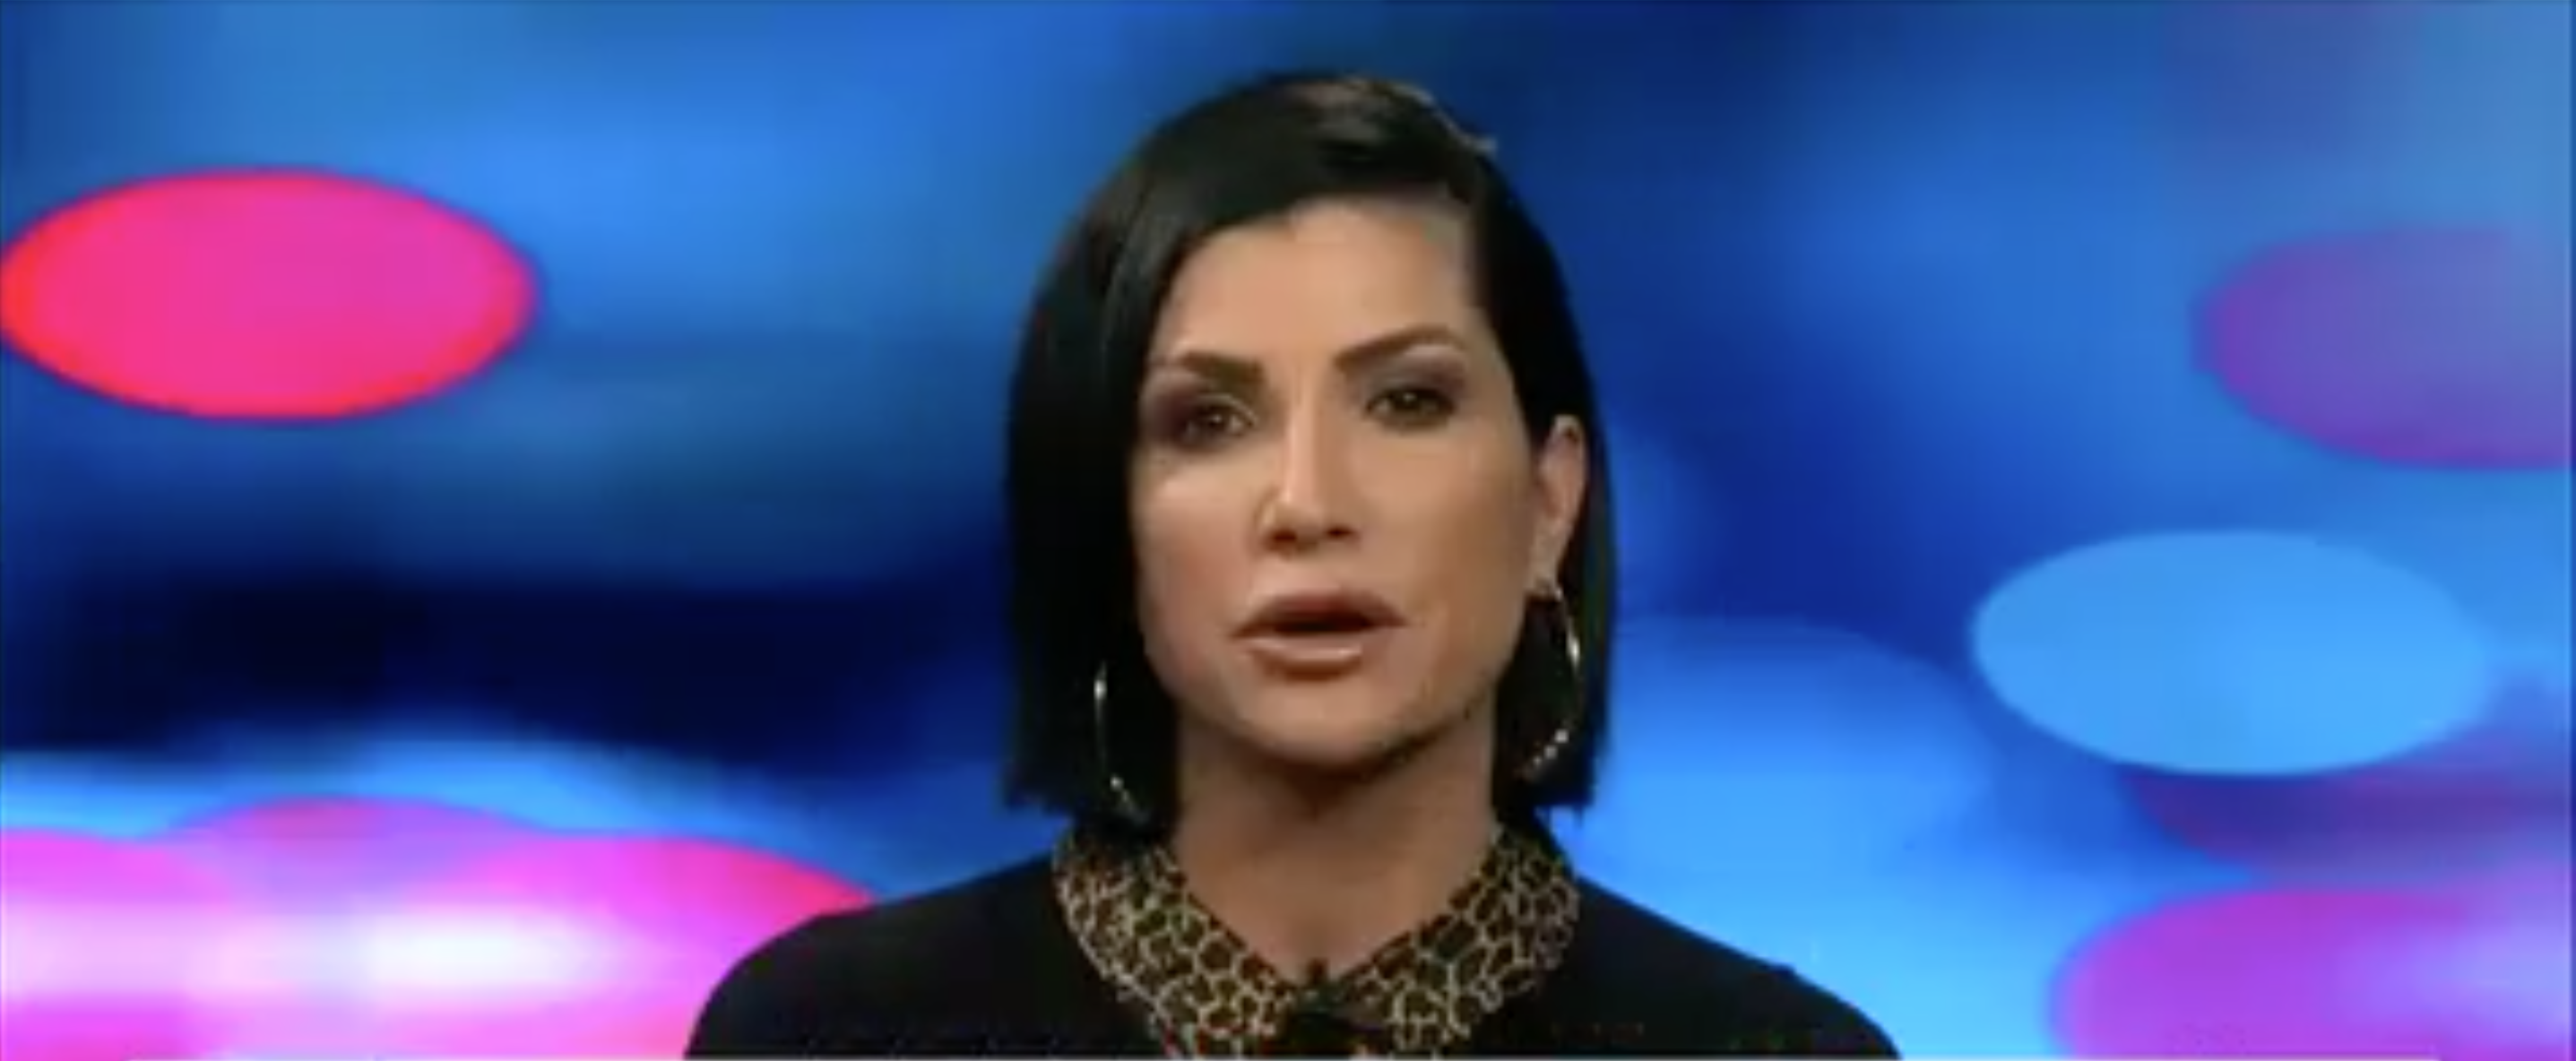 Dana Loesch: 'Troubling' to see law-abiding gun owner shot in her home by officer